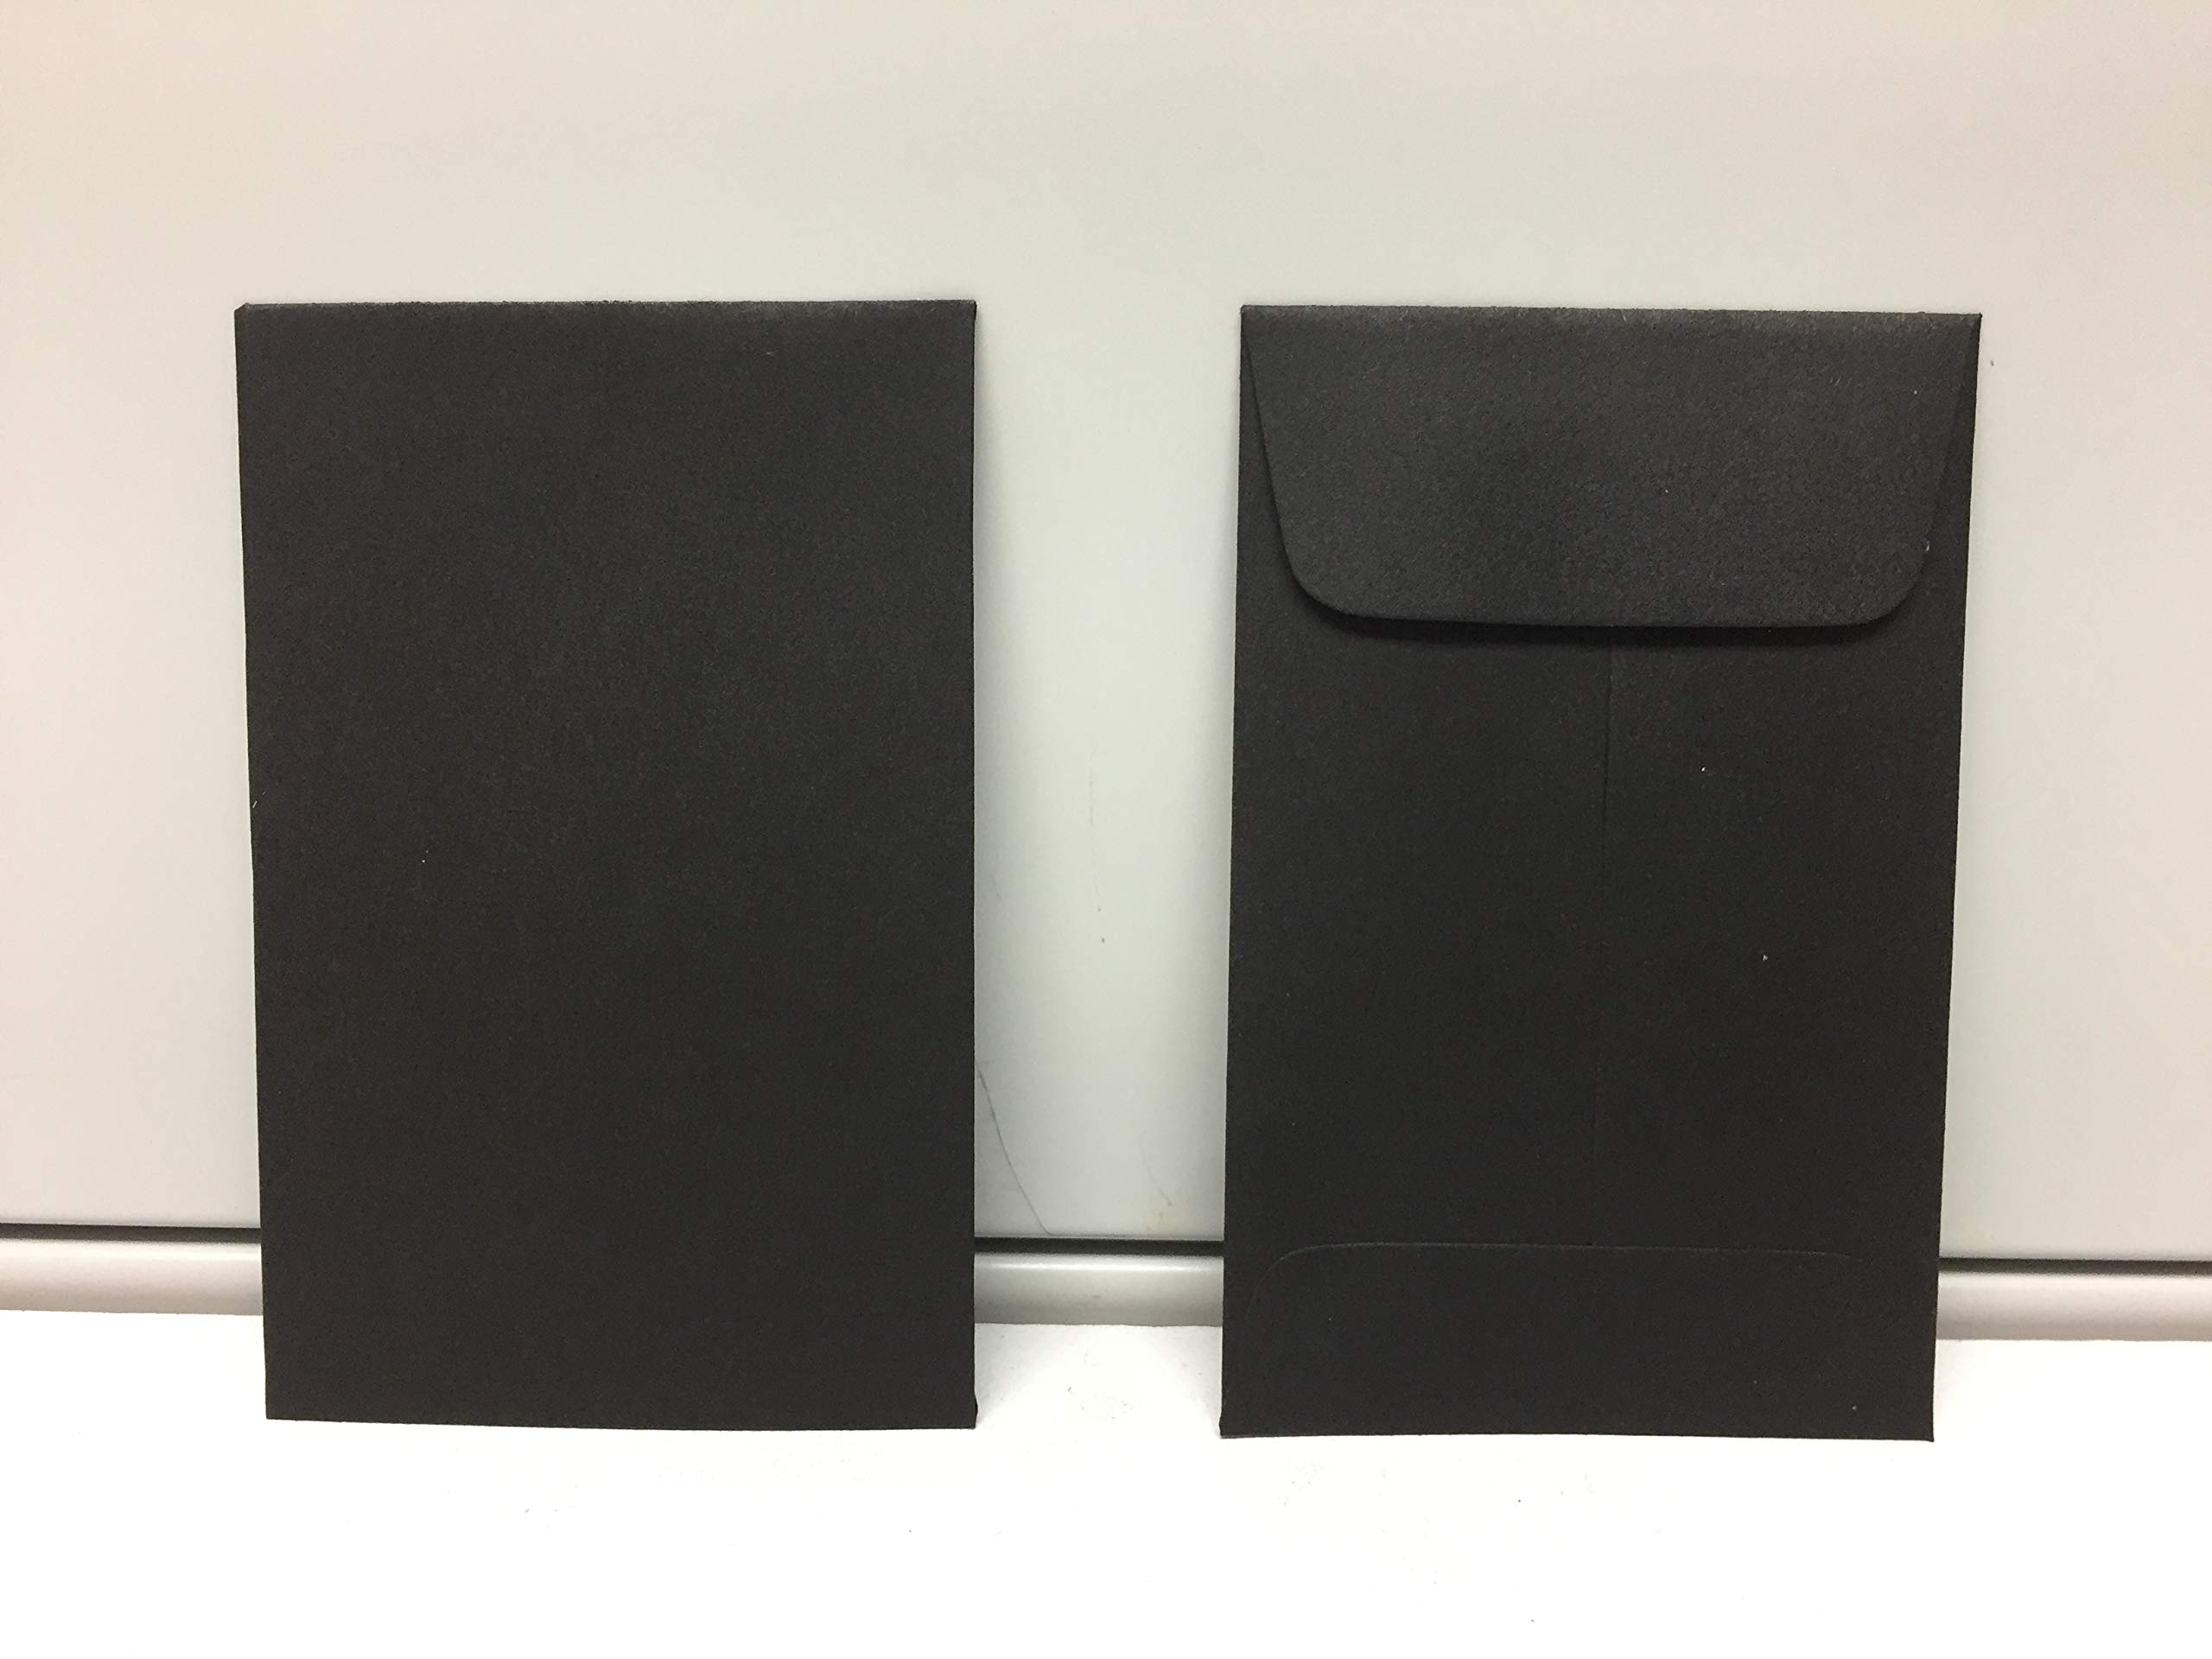 Black #1 Coin Envelope 2 1/4 x 3 1/2 inches 50 Envelopes per Box